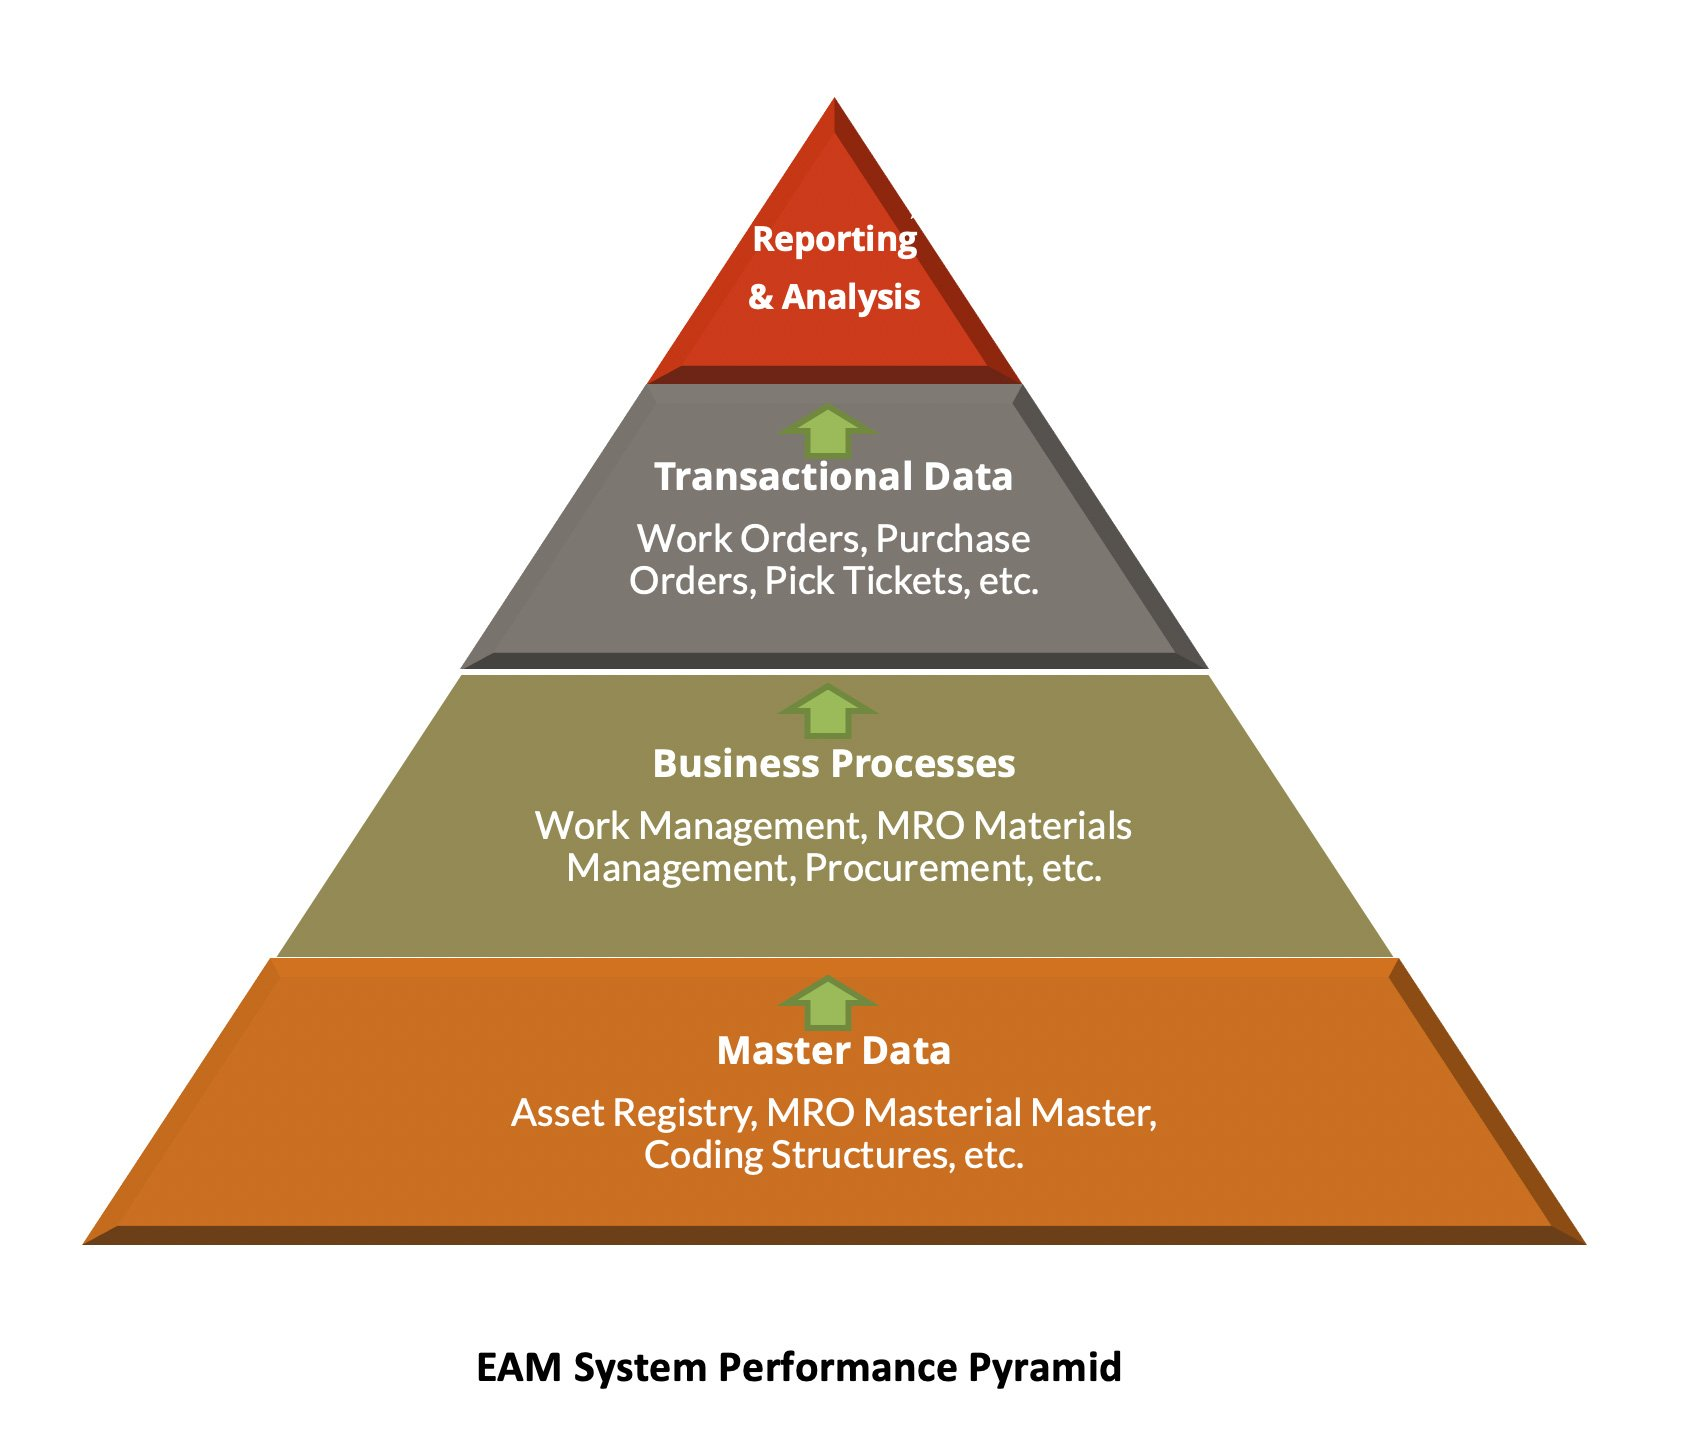 EAM System Performance Pyramid